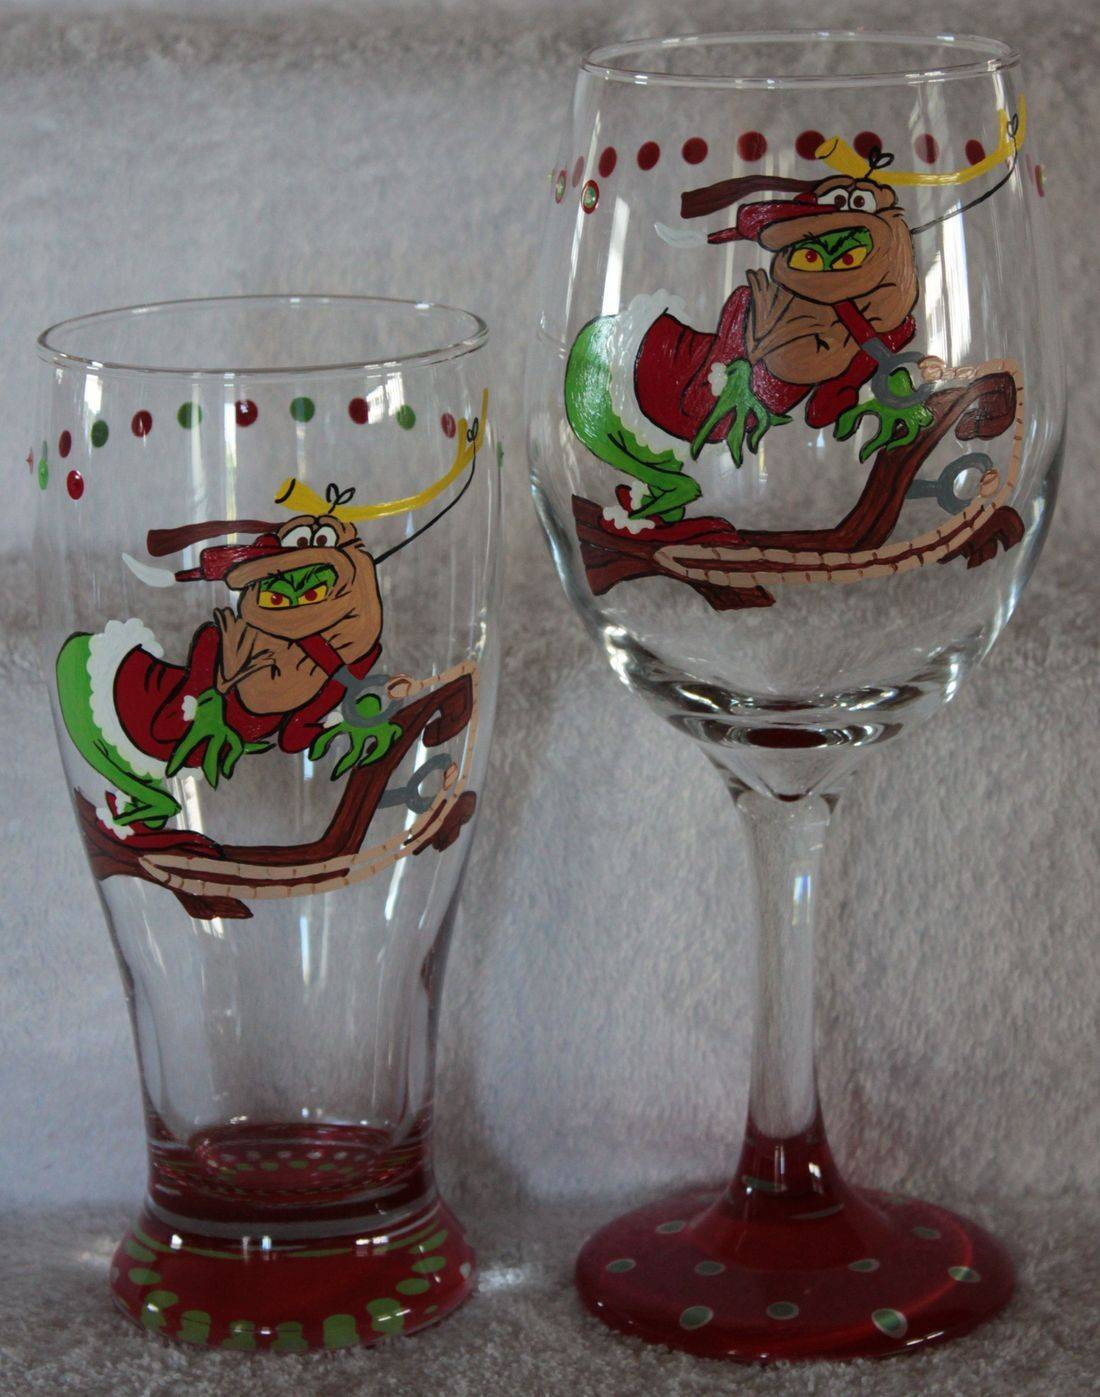 Grinch wine glass, Grinch and max wine glass, Christmas Wine Glass, Max and Grinch Wine Glass